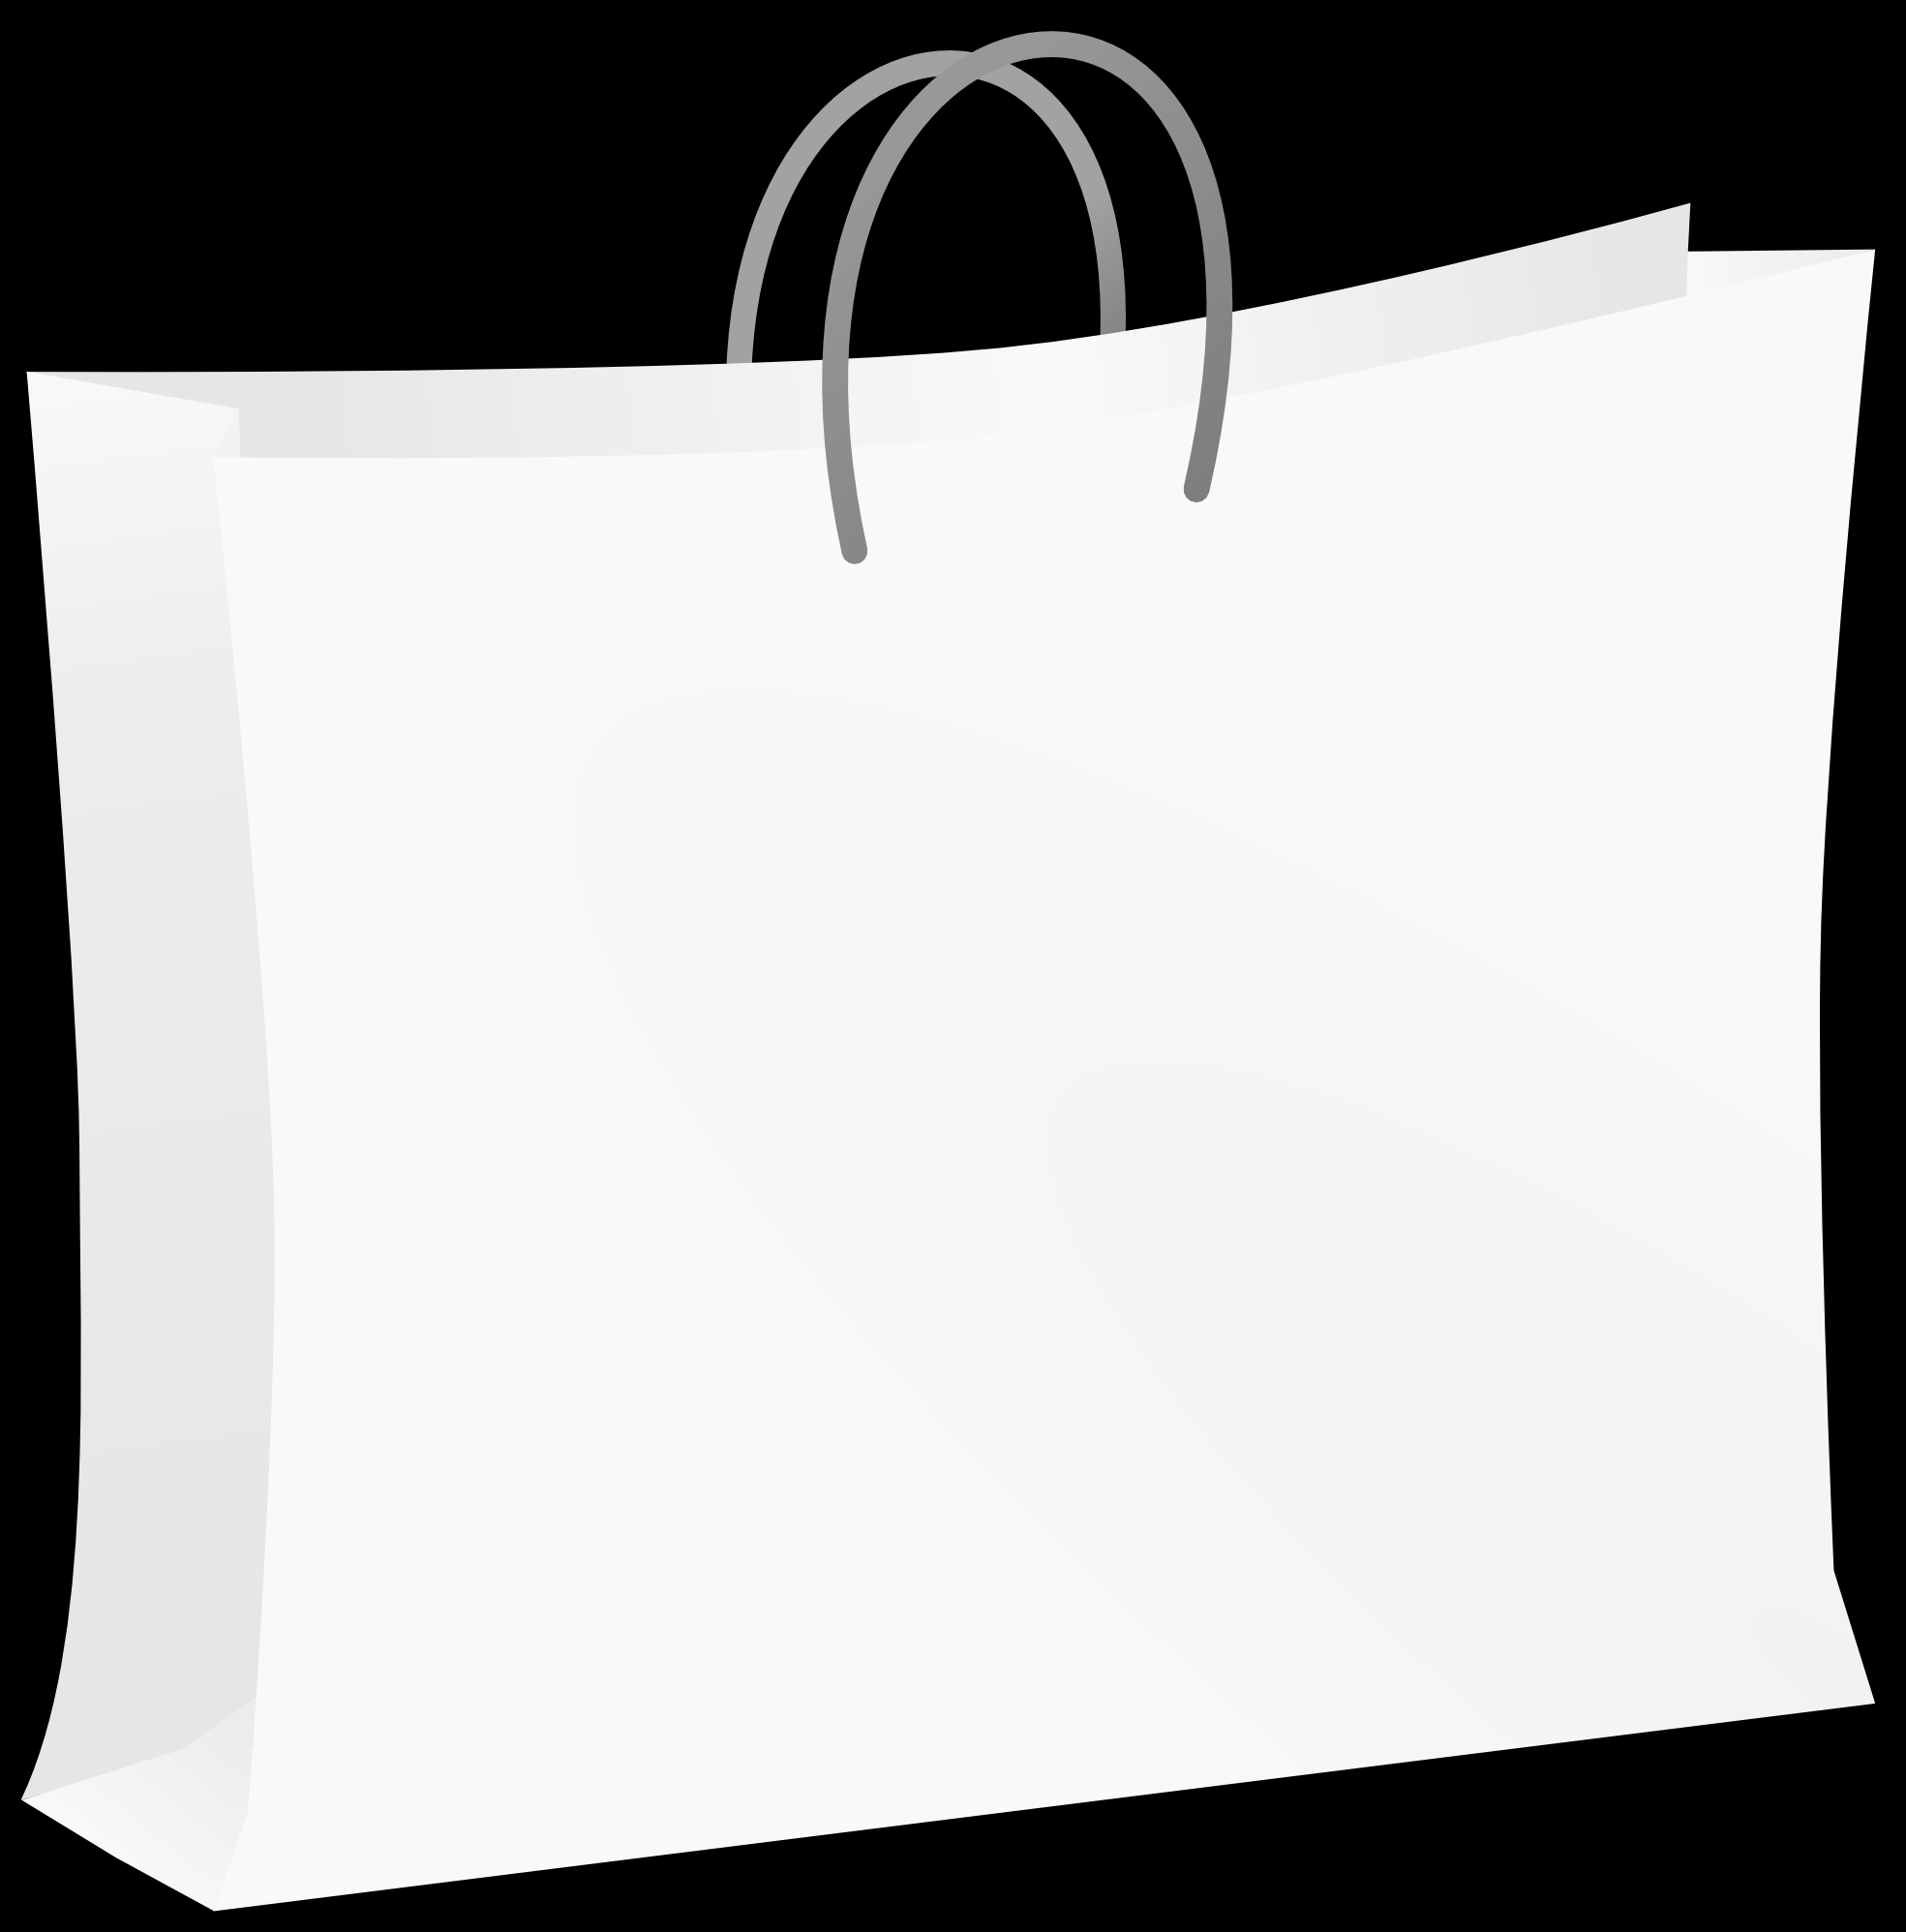 Shopping Bag Black And White Clipart#2005103.